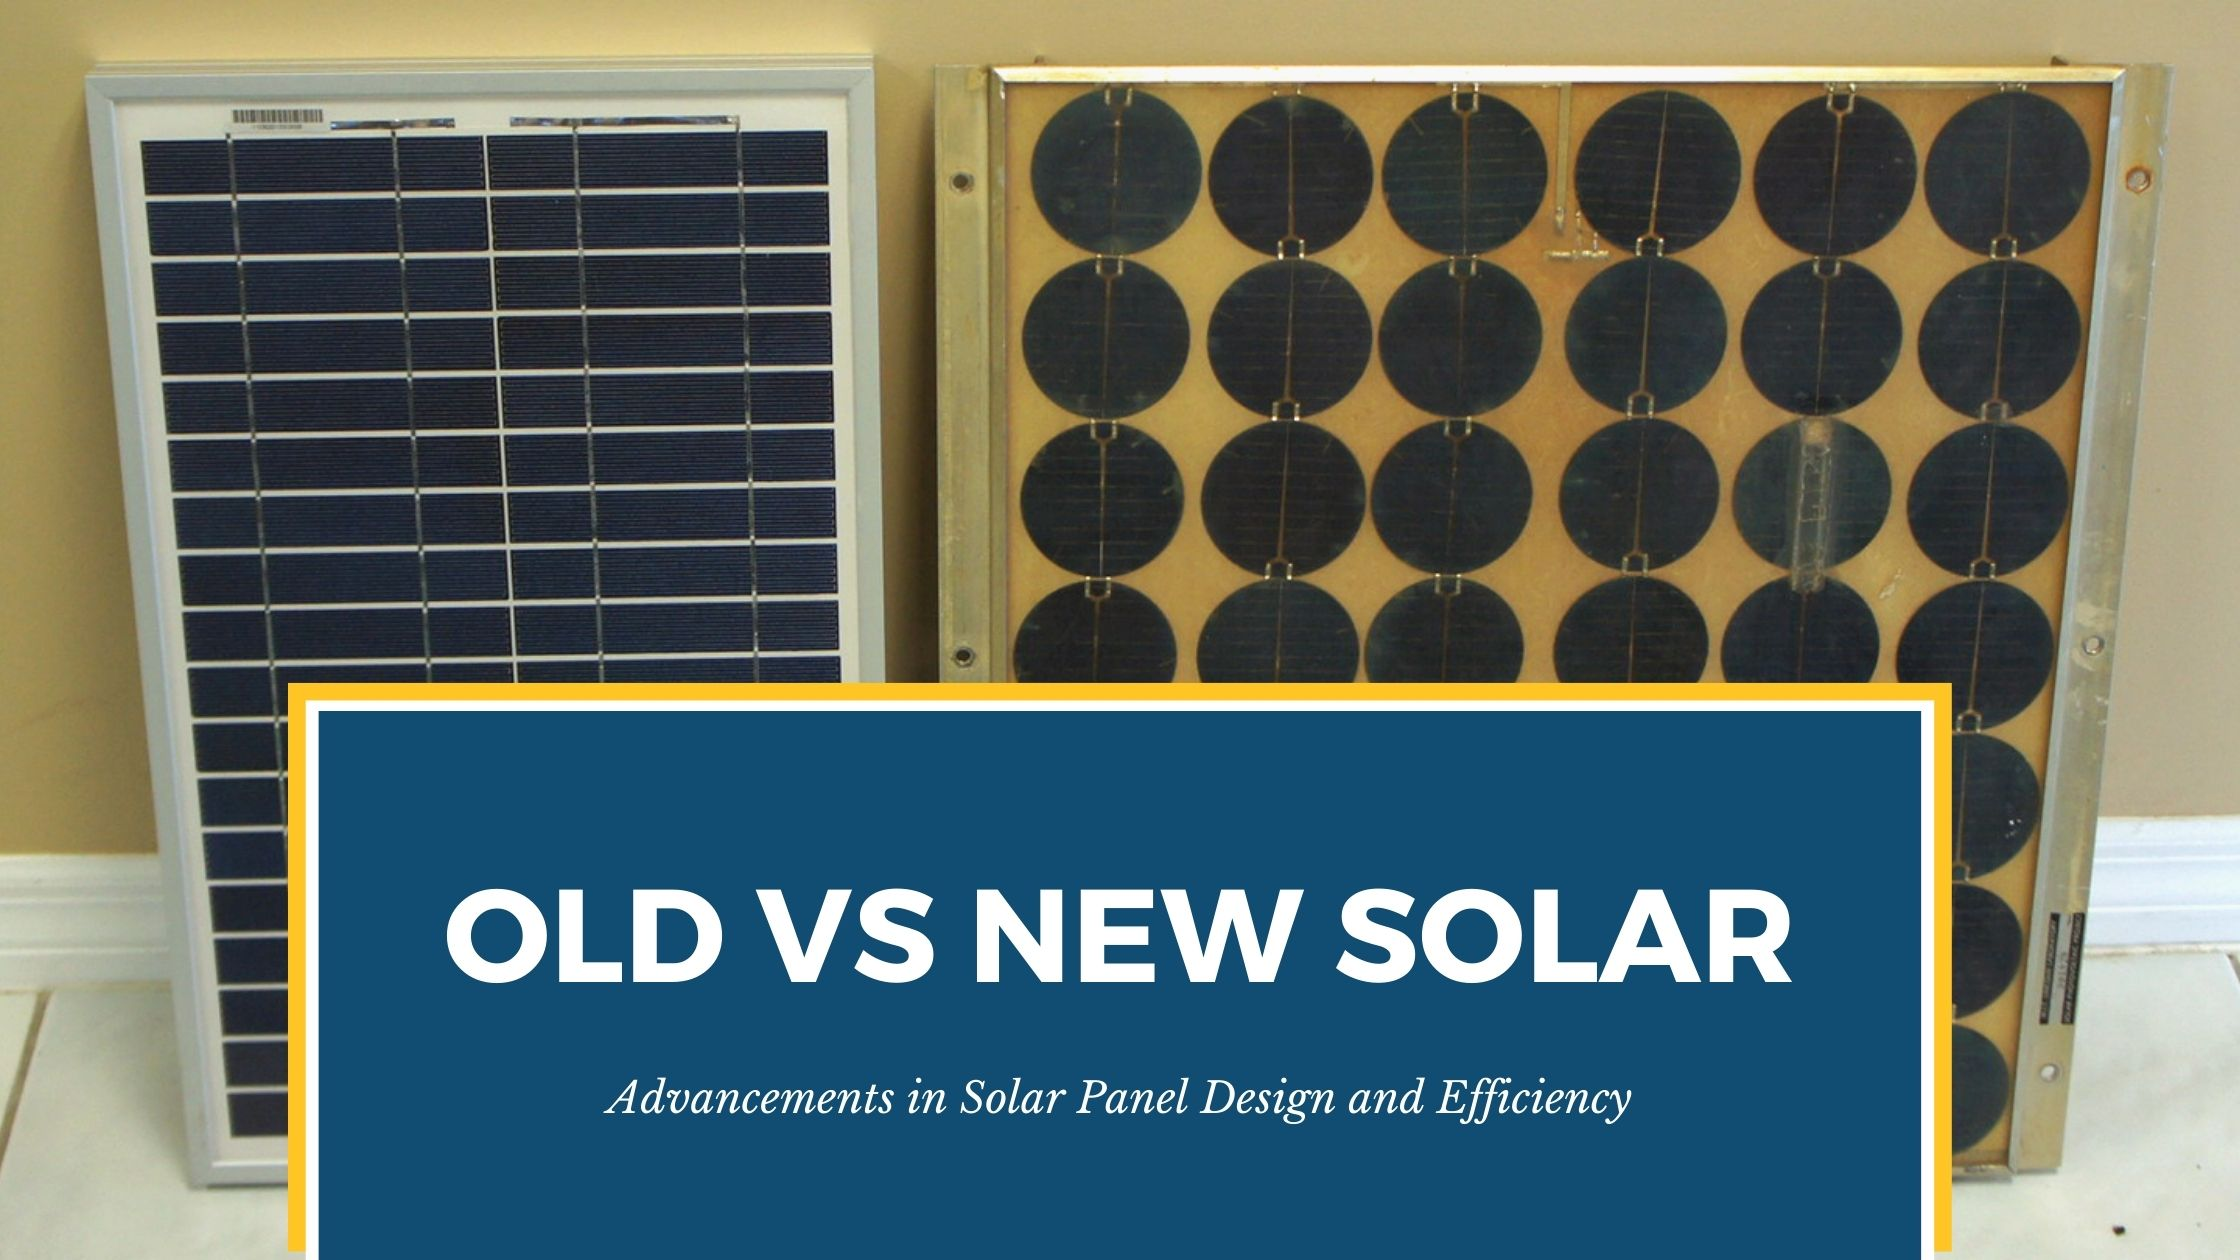 Advancements in Solar Panel Design and Efficiency